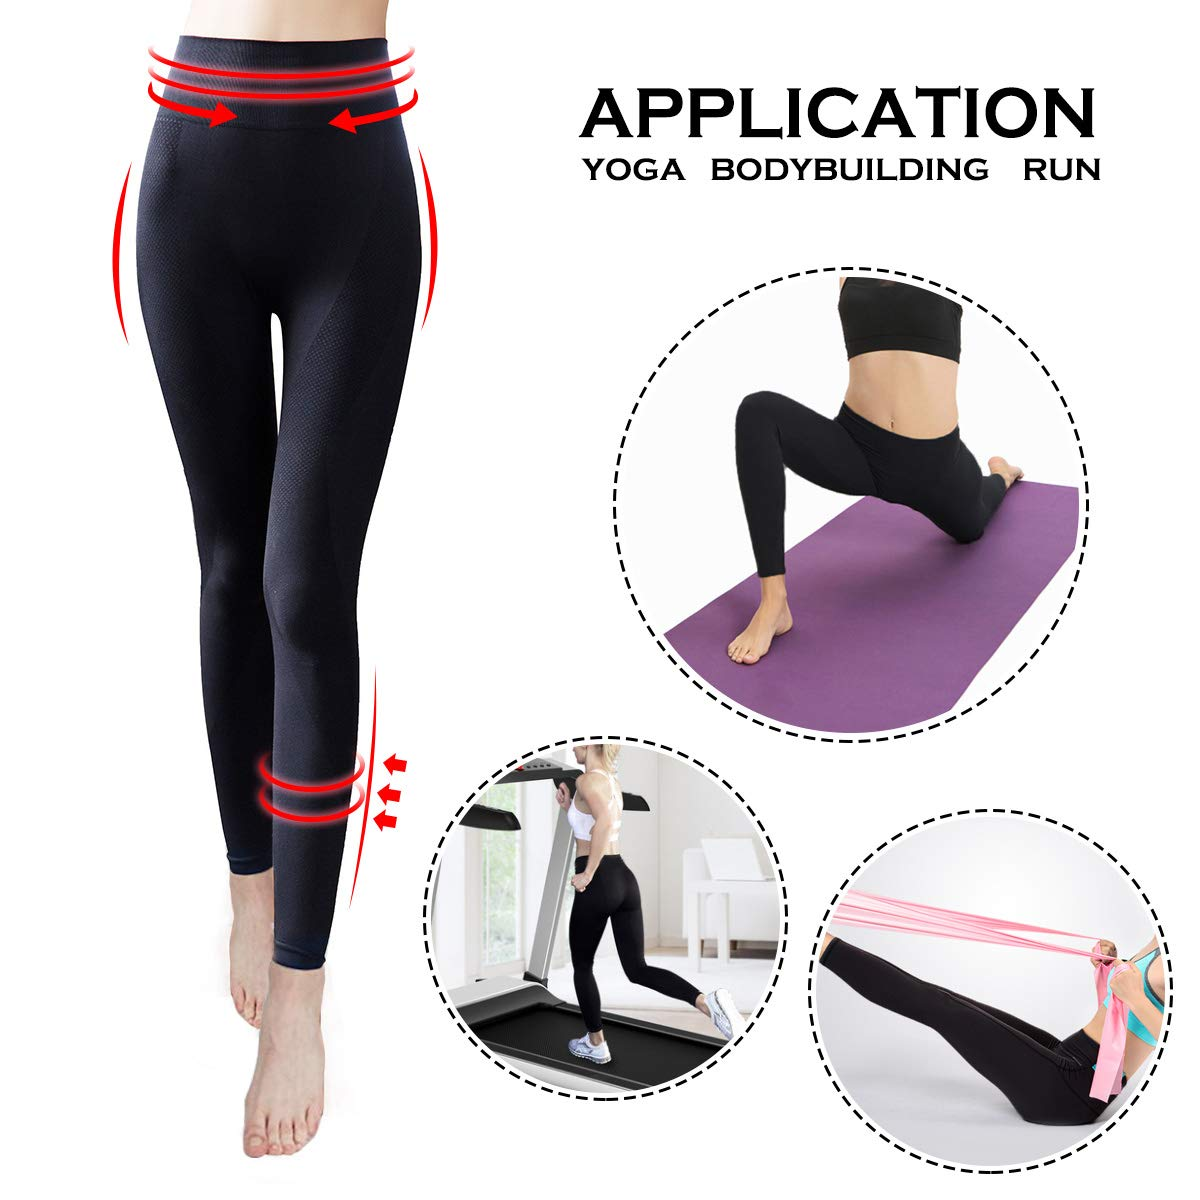 Cayanmydery Soft High Waist Yoga Pants Tummy Control Workout Running 4 Way Stretch Yoga Leggings